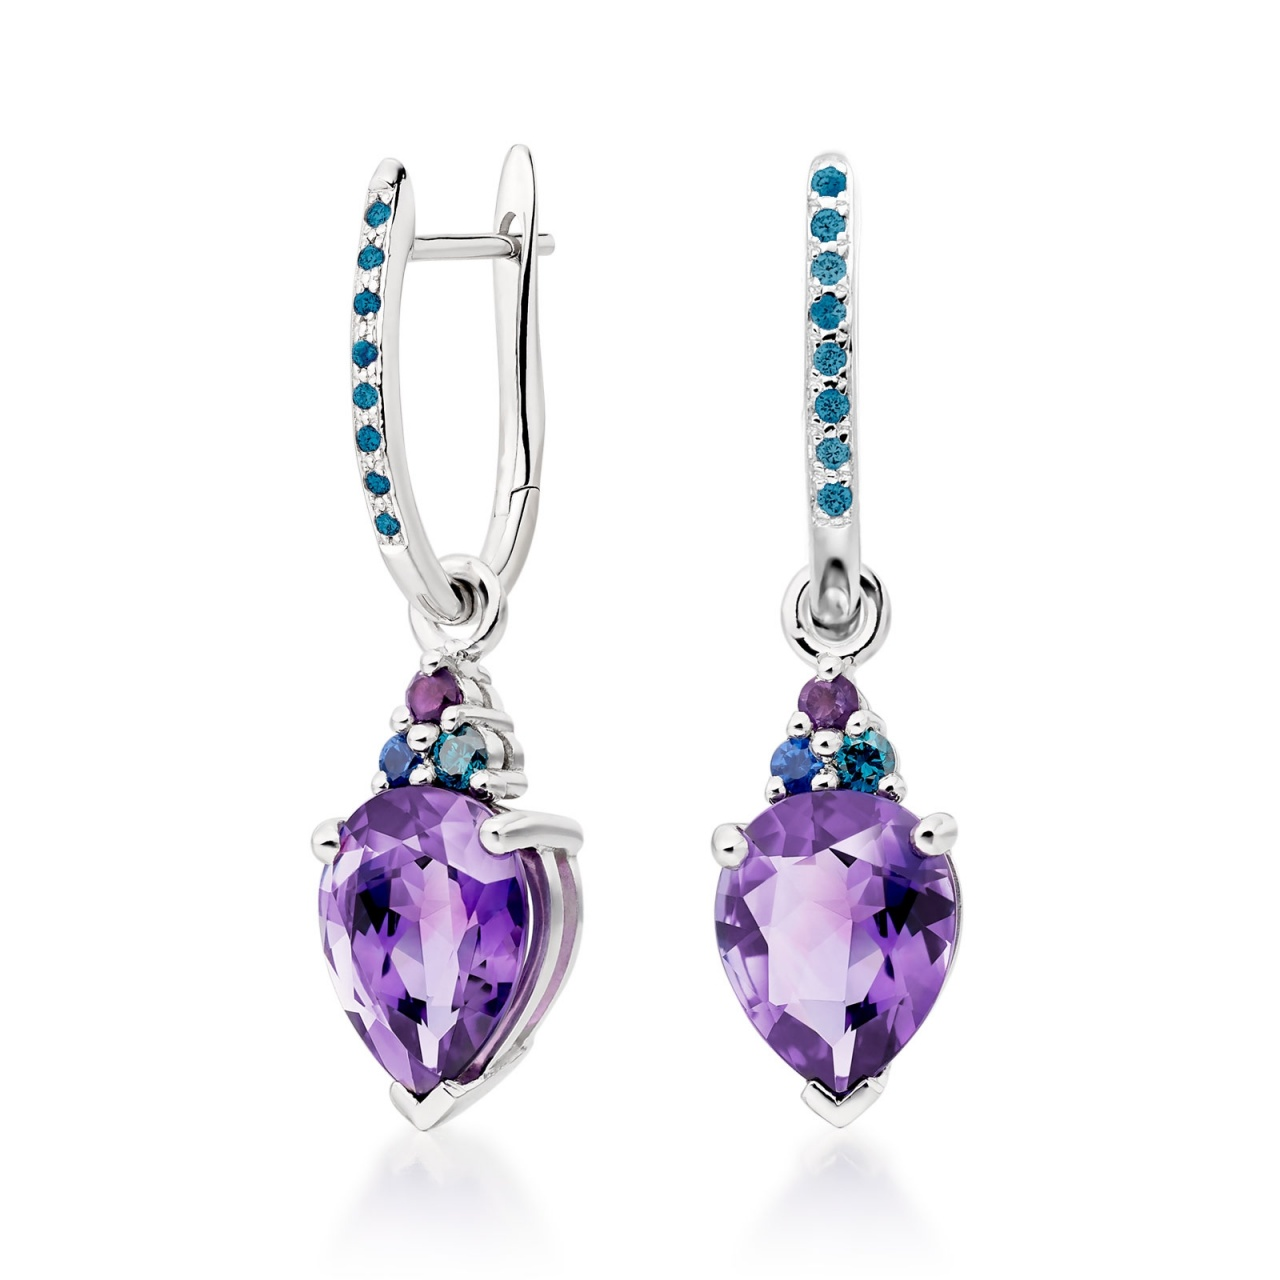 Blue Diamond Leverbacks with Astral Lagoon Drops-EAAMWG1125-1